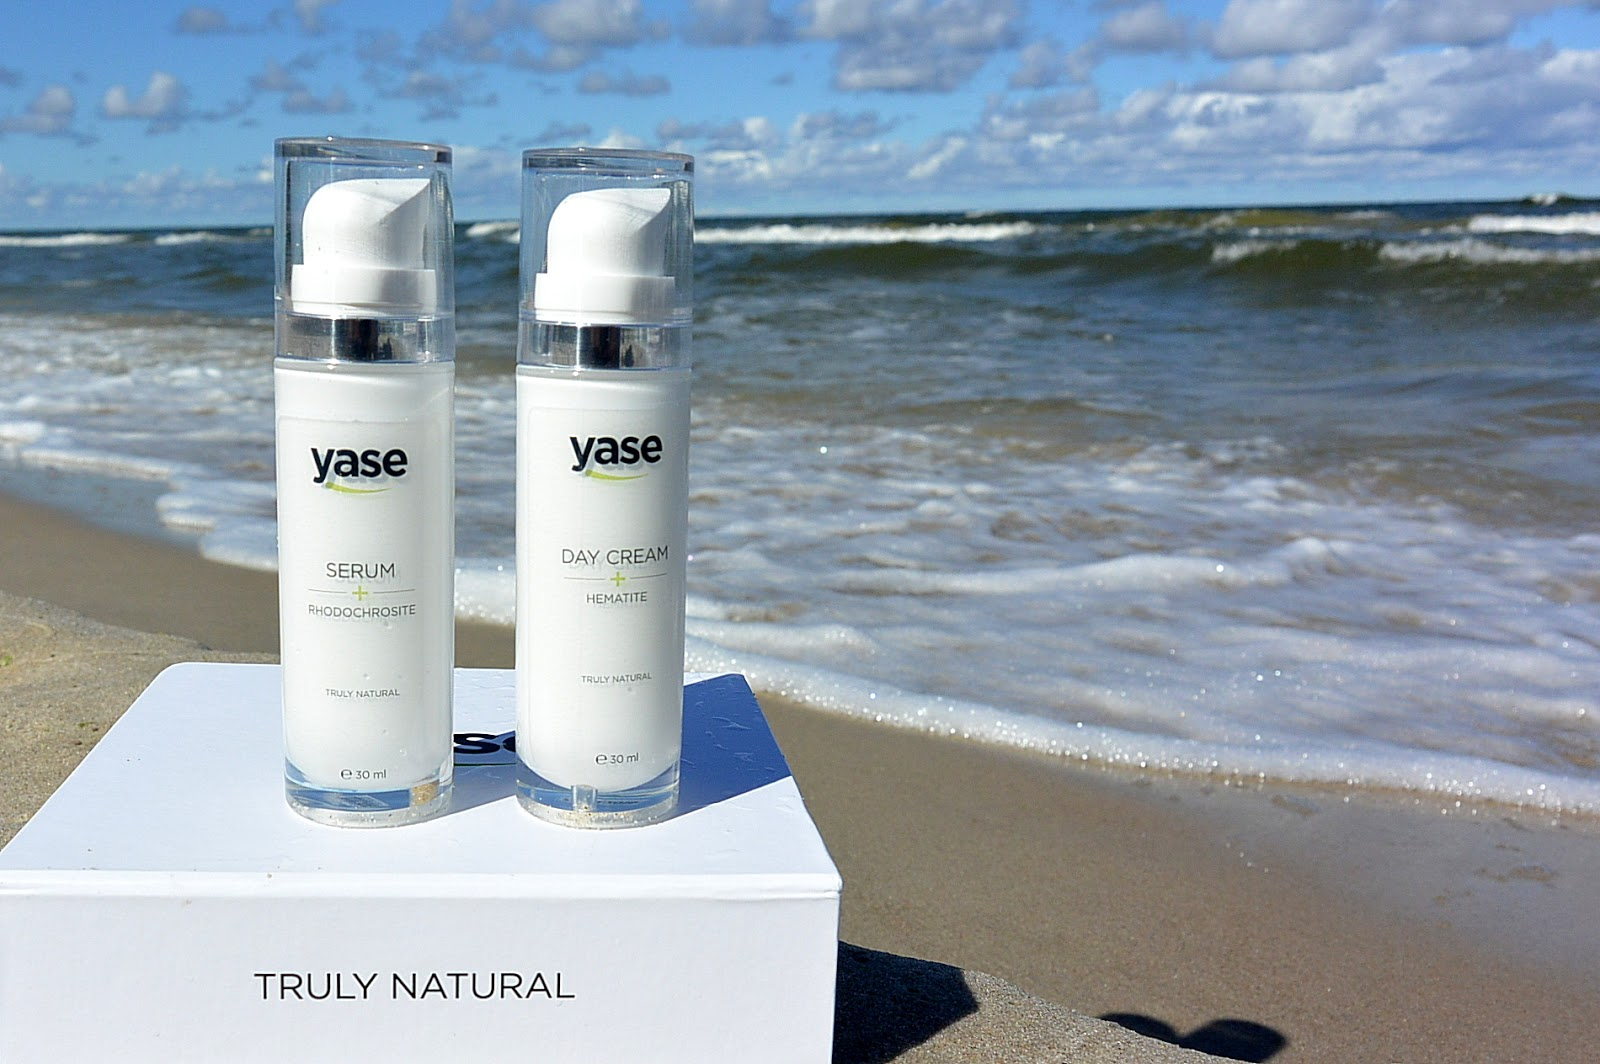 TRULY NATURAL | Yase Cosmetics